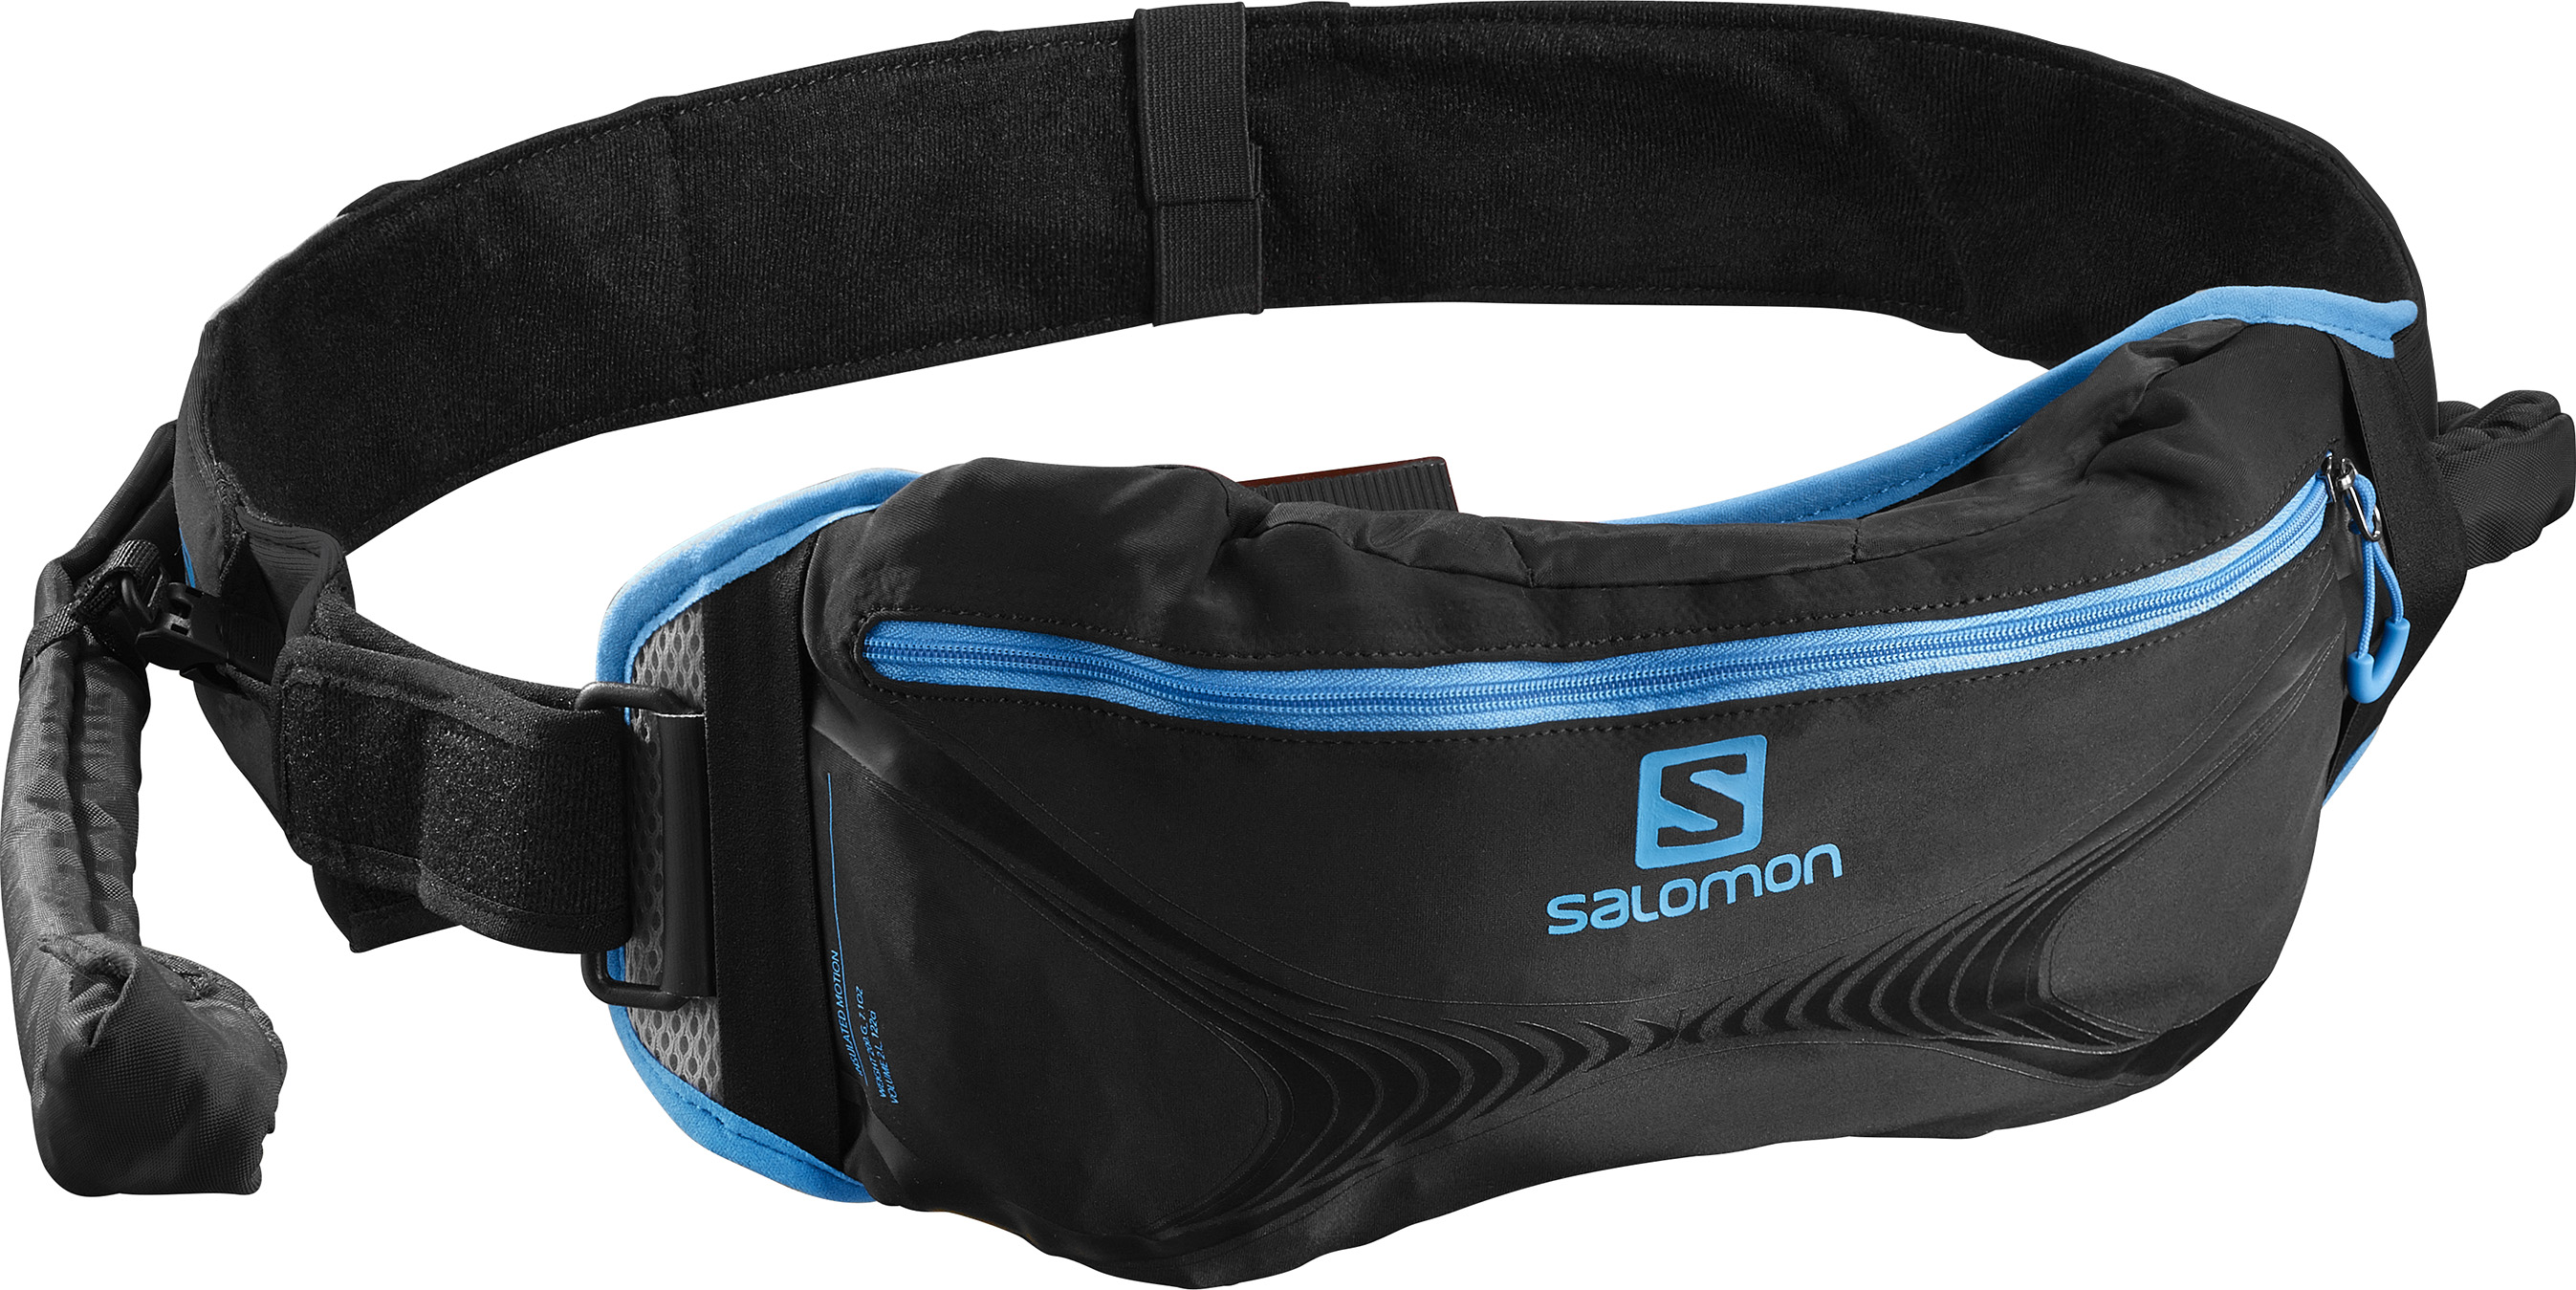 SALOMON S/RACE INSULATED BELT SET Blk/Cyan